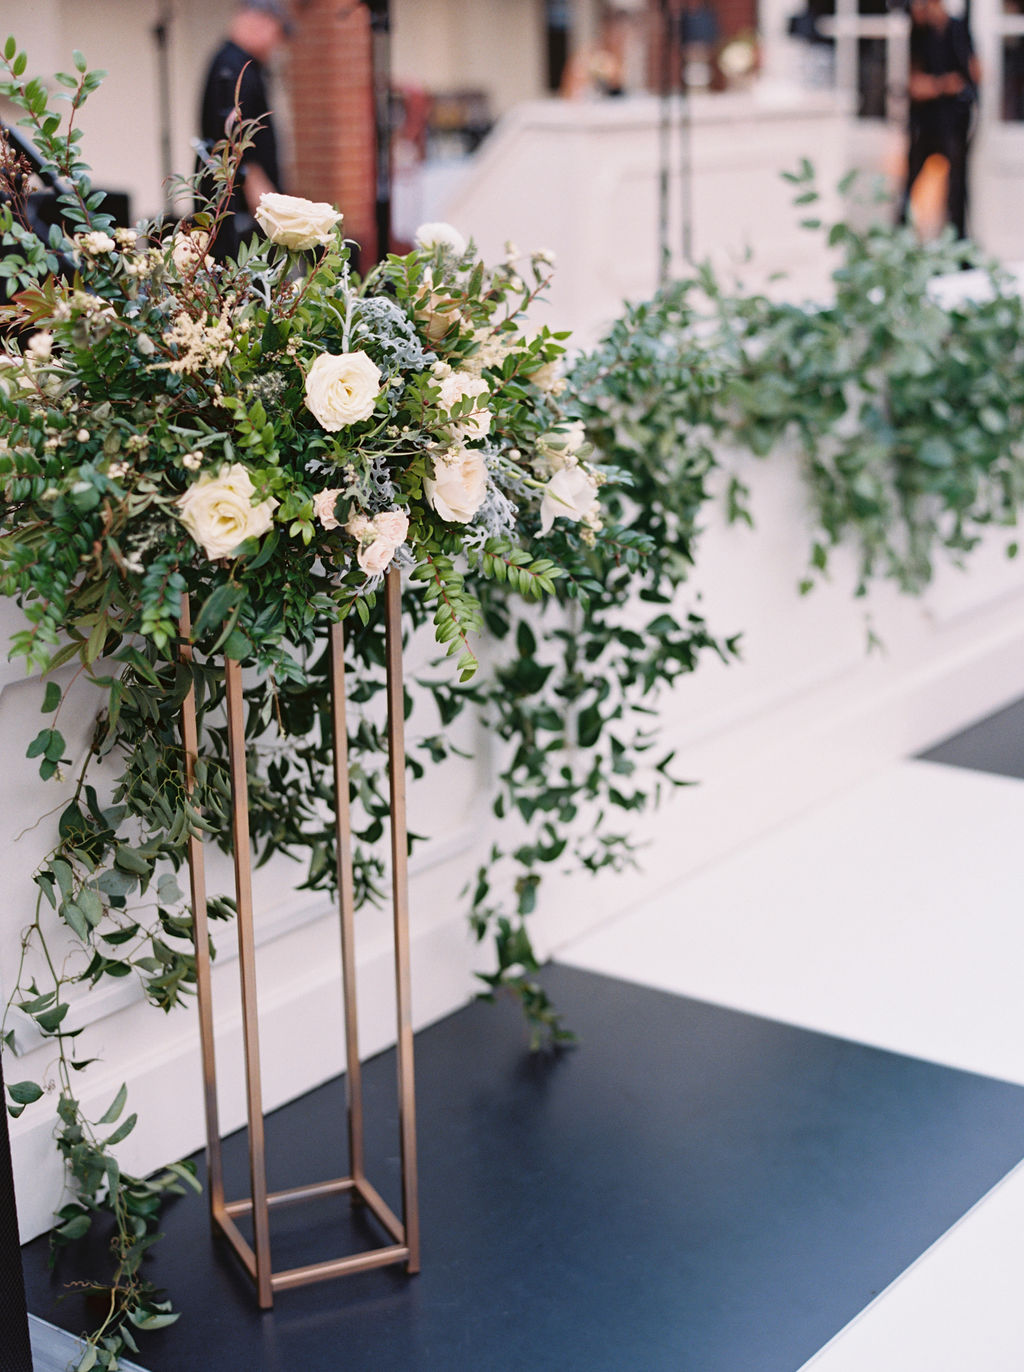 Modern gold stands overflowing with natural greenery and white floral centerpieces. Southeast US Wedding Floral Designer